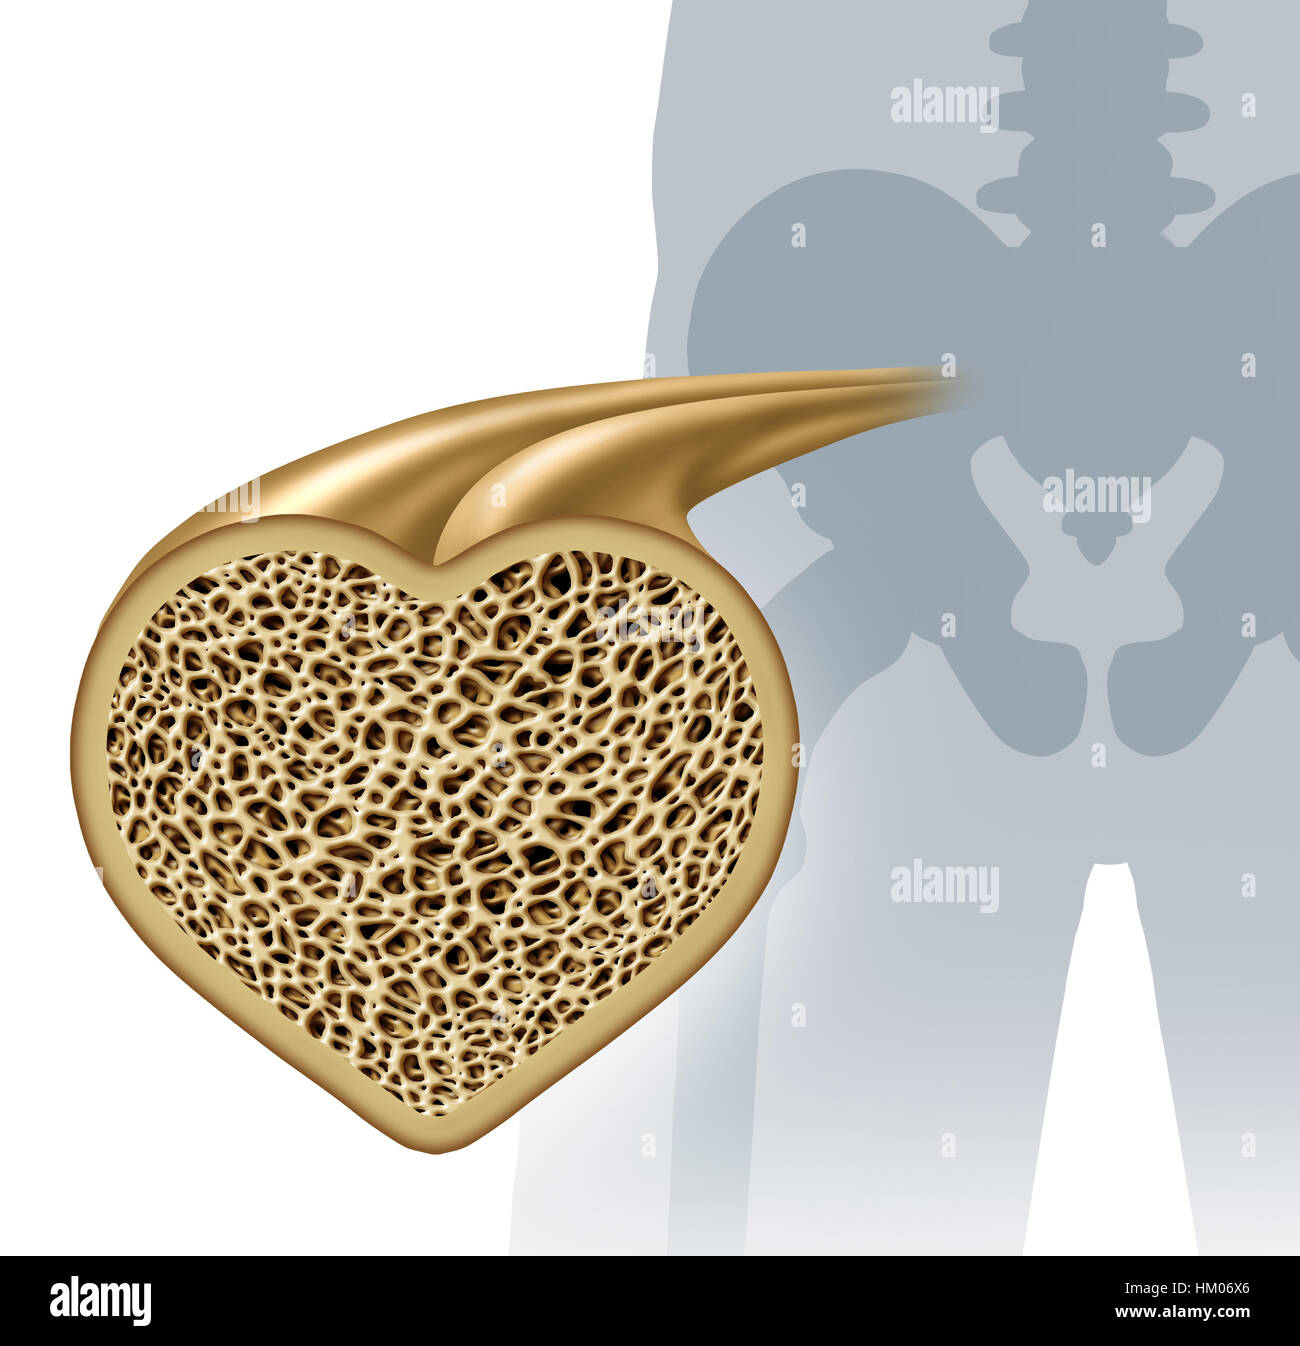 Bone health and osteoperosis prevention concept as a healthy anatomy in a heart shape as a strong normal spongy - Stock Image